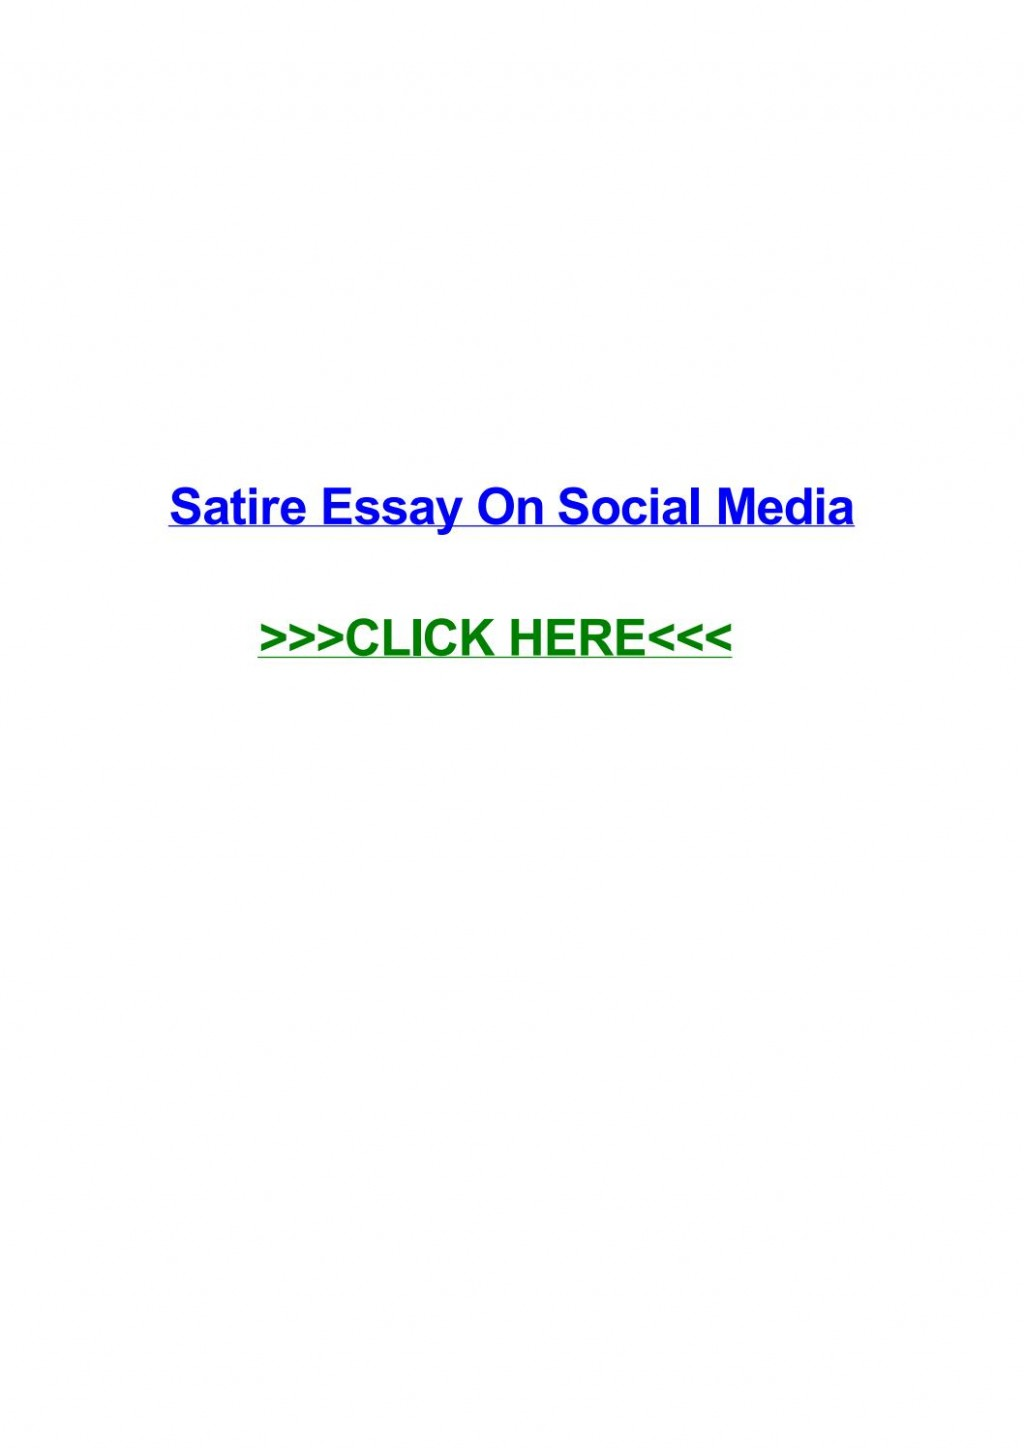 016 Satire Essay On Social Media Example Page 1 Unbelievable Large